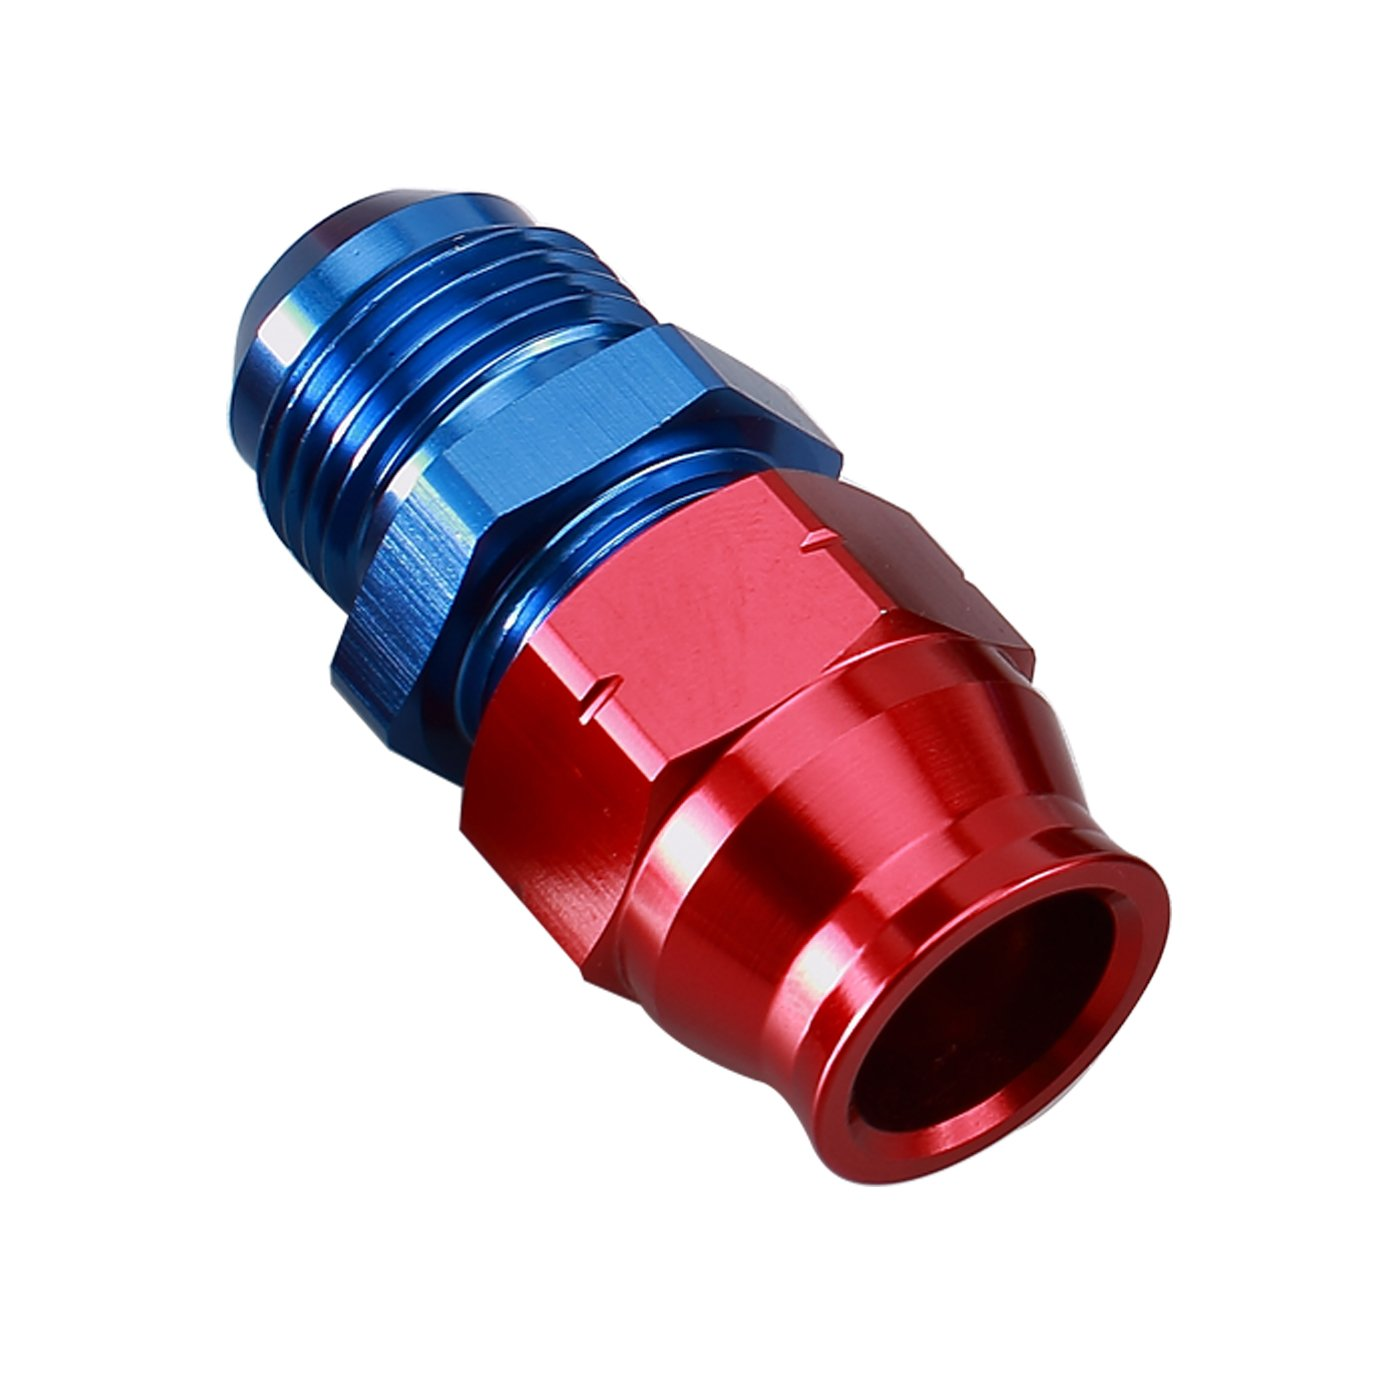 Ano-Tuff Special Purpose Adapter 6AN Male Flare to 5/16 Tubing Hose Fitting red blue Aluminum Anodized 6AN male to 5/16 Tube